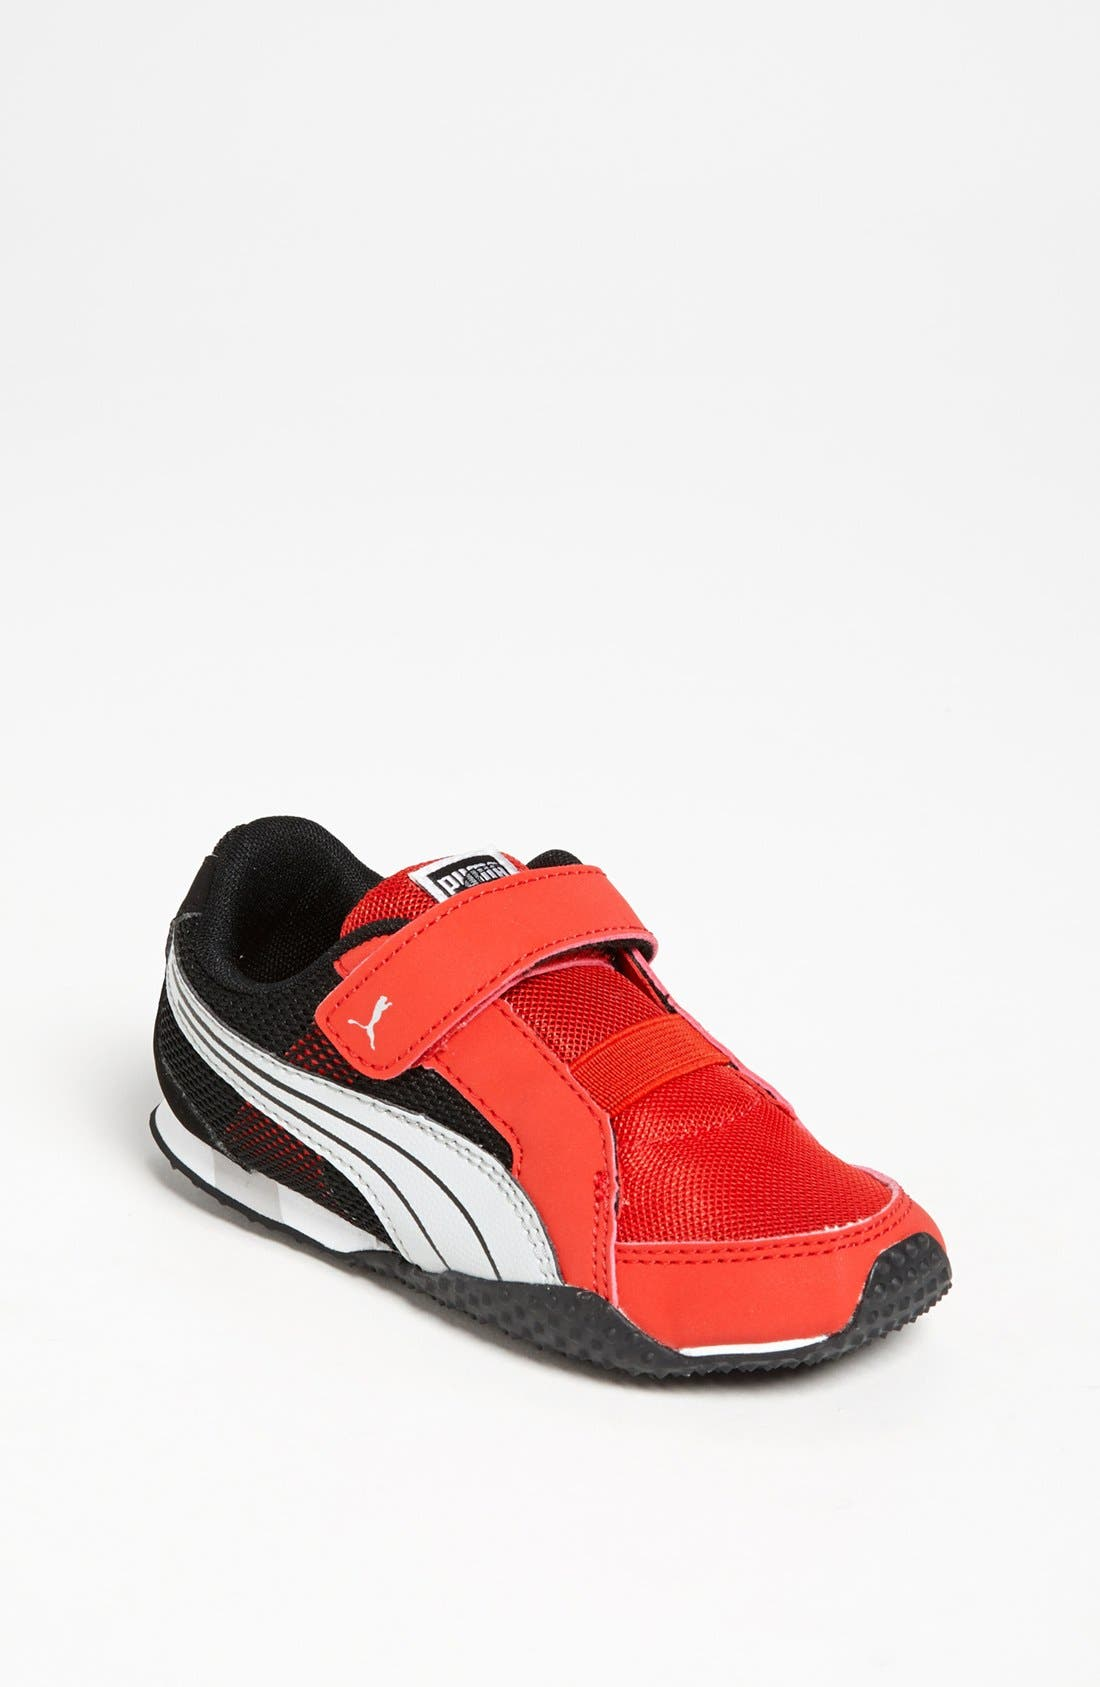 Main Image - PUMA 'H-Mesh V' Sneaker (Baby, Walker, Toddler, Little Kid & Big Kid)